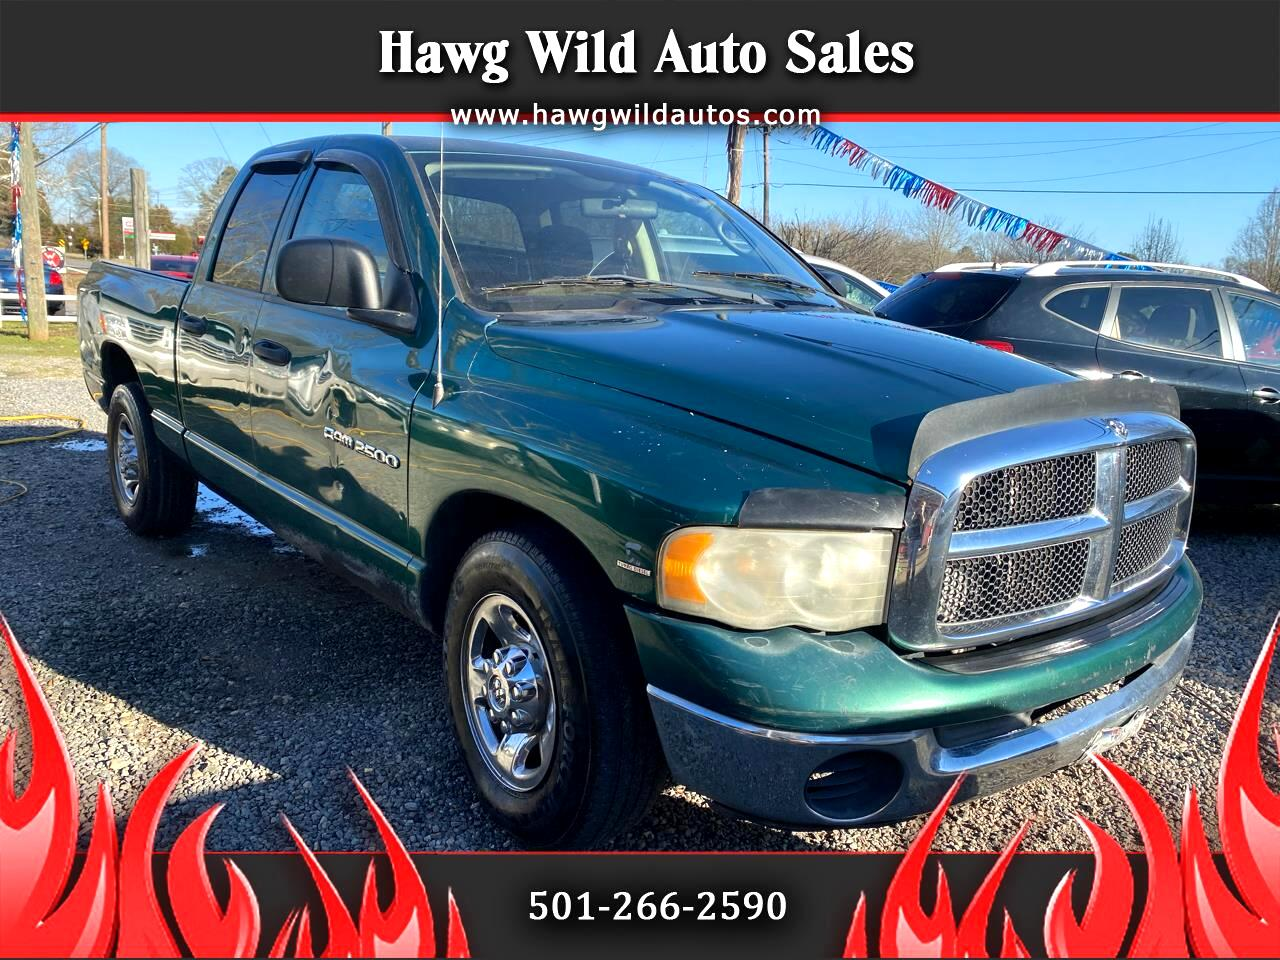 Dodge Ram 2500 SLT Quad Cab Long Bed 2WD 2003